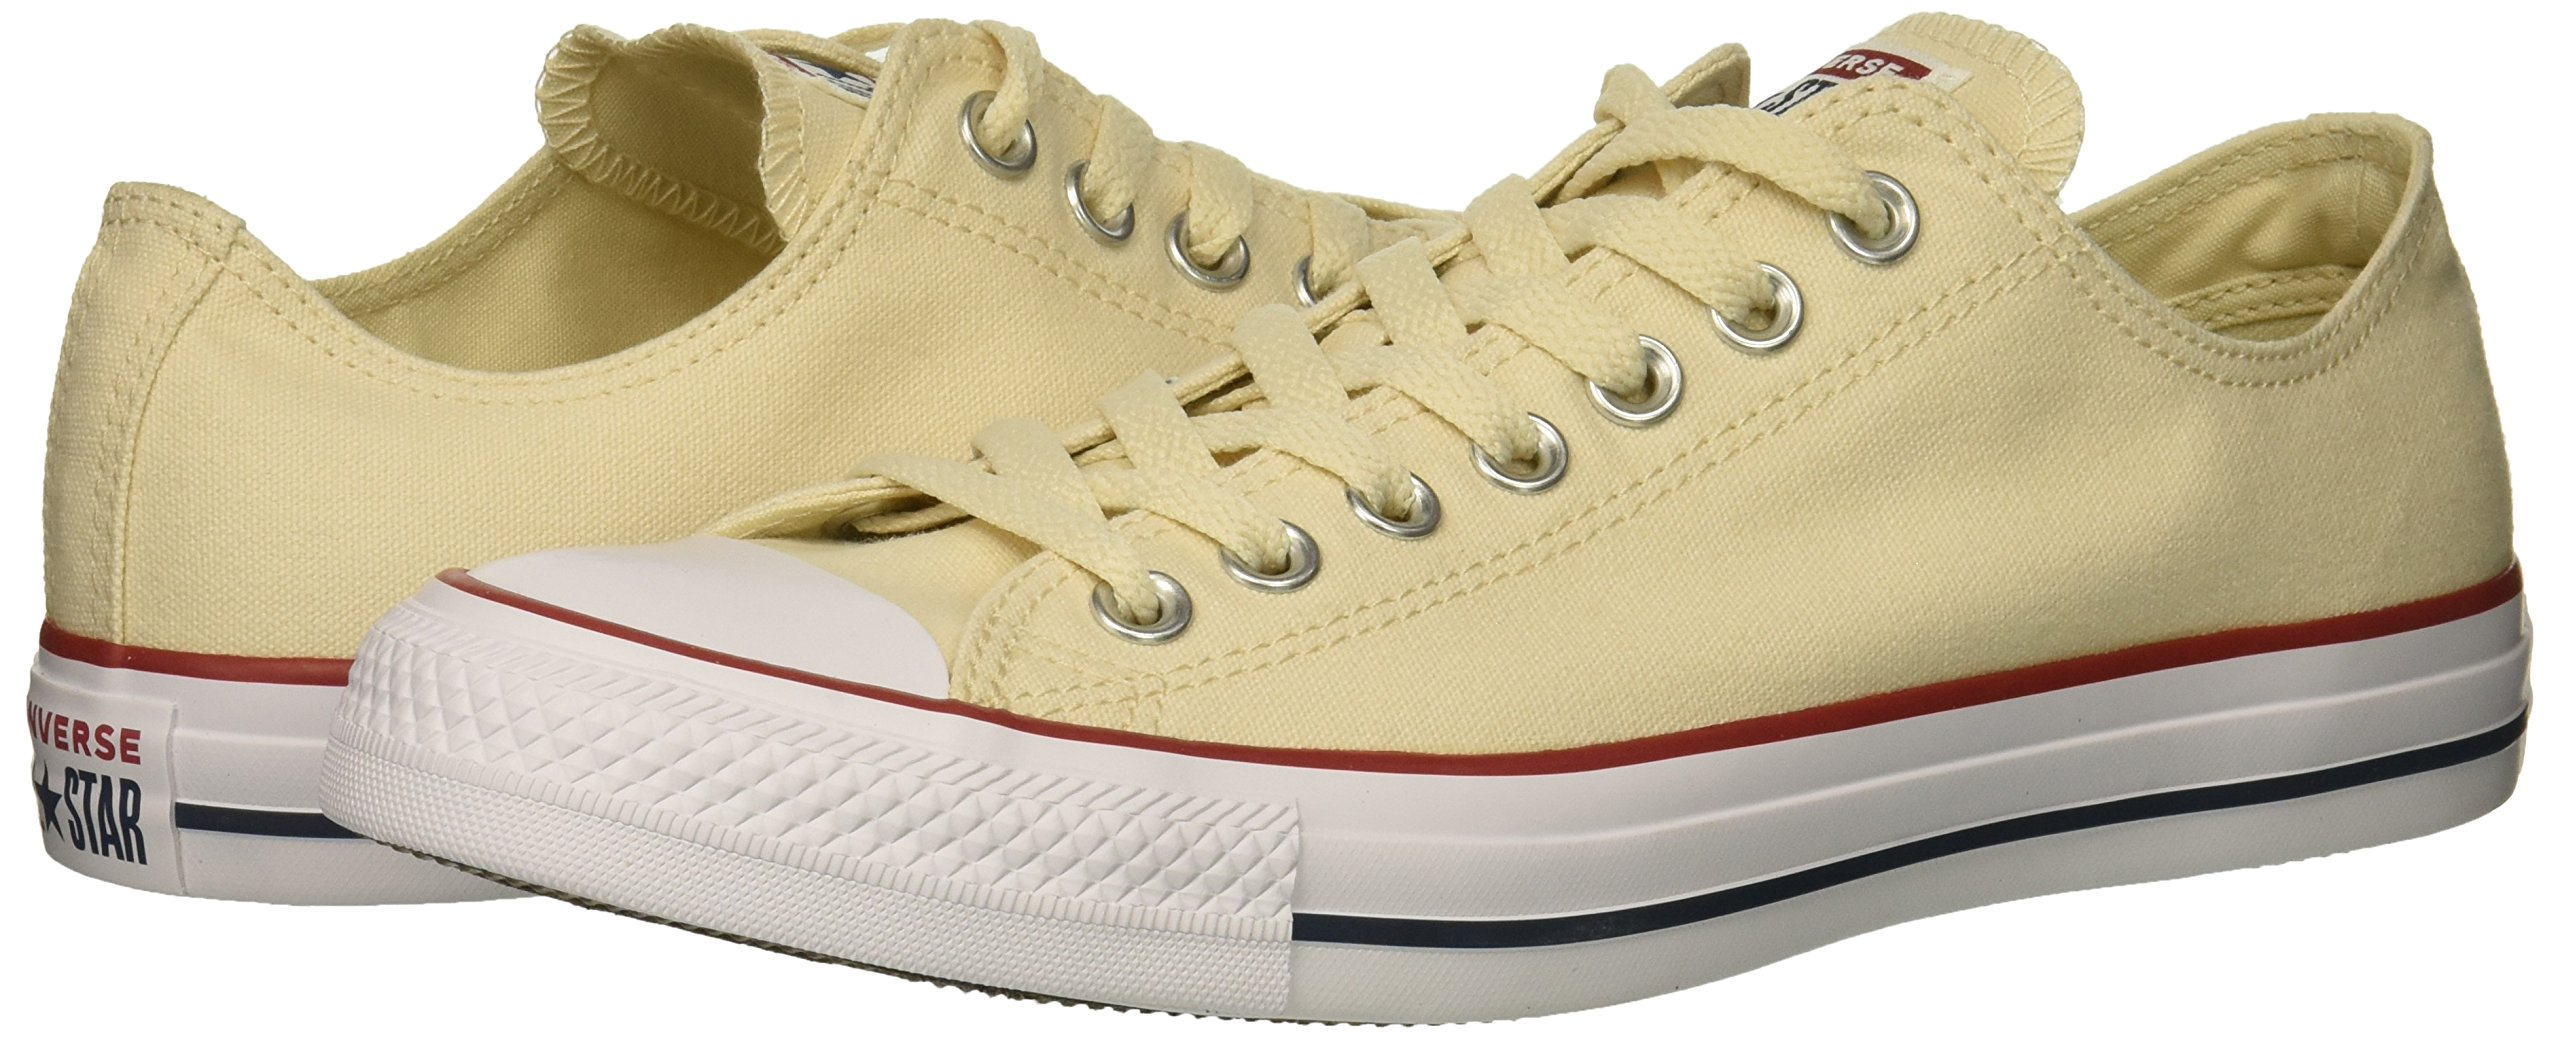 Converse Chuck Taylor All Star Low Top Sneaker, Natural Ivory, 11 M US by Converse (Image #5)